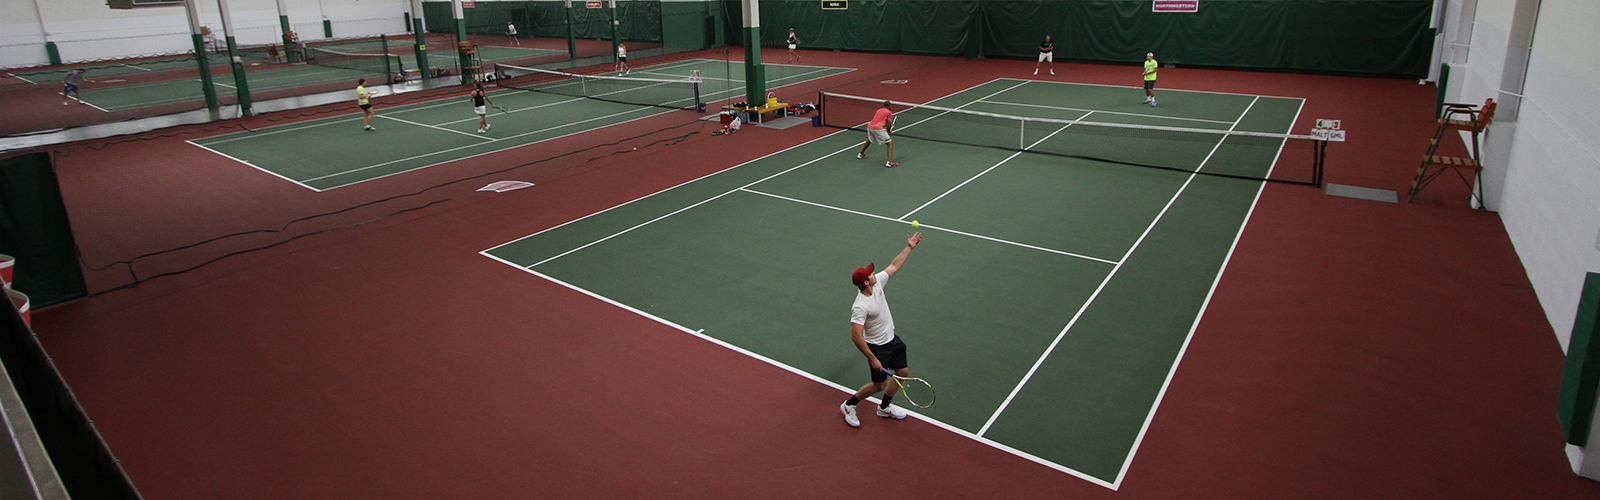 Photo of a man serving a tennis ball at the Nielsen Tennis Stadium courts